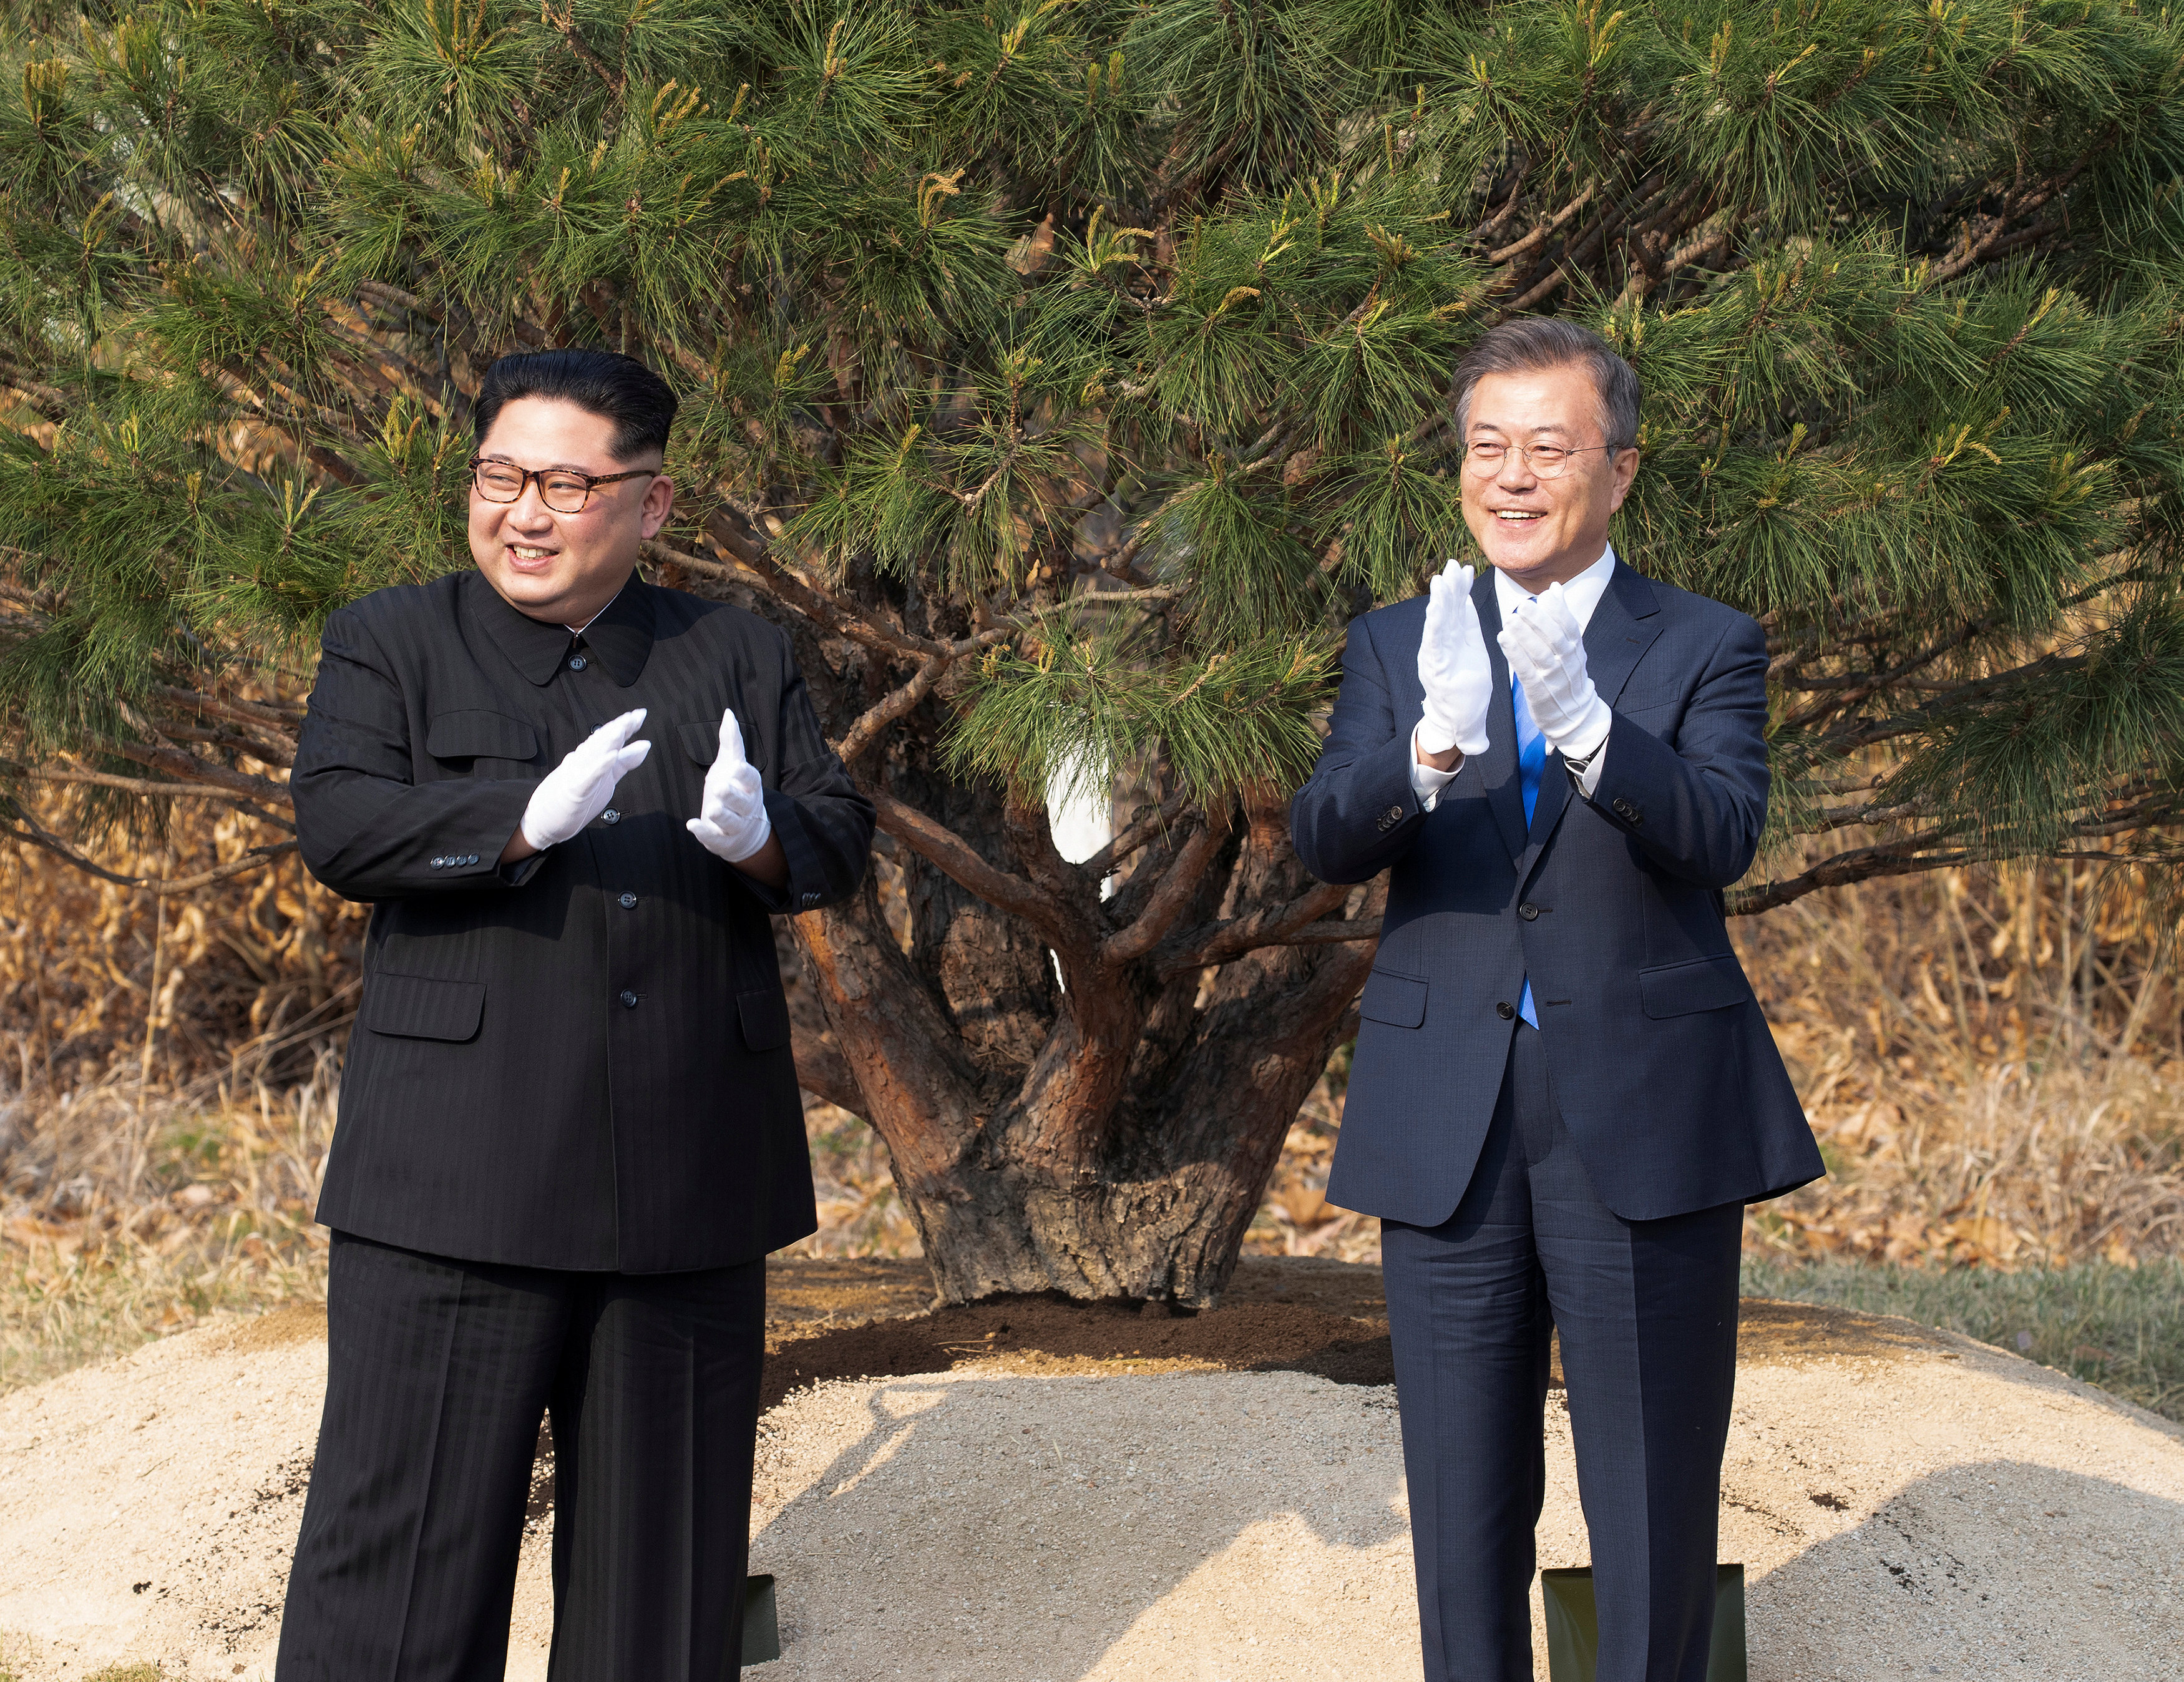 South Korean President Moon Jae-in and North Korean leader Kim Jong Un applaud after planting a tree at the truce village of Panmunjom inside the demilitarized zone separating the two Koreas, South Korea, April 27, 2018.   Korea Summit Press Pool/Pool via Reuters